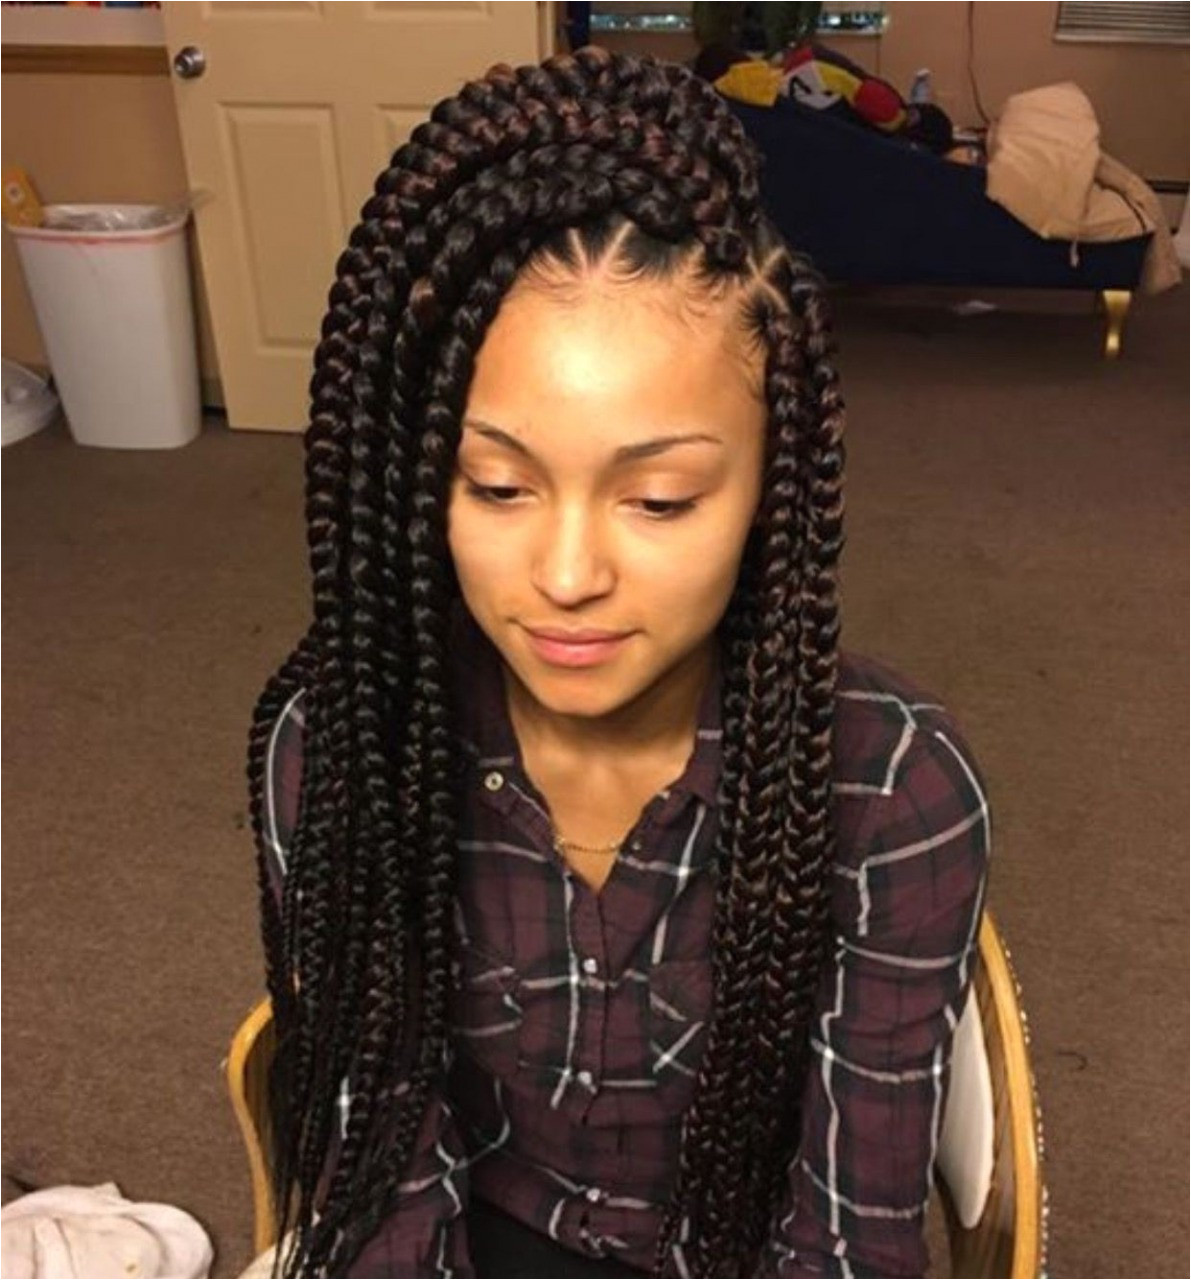 Little Girl Hairstyles In Braids Awesome 20 Little Girl Hairstyles New Dreadlocks Braids Hairstyles New Pin